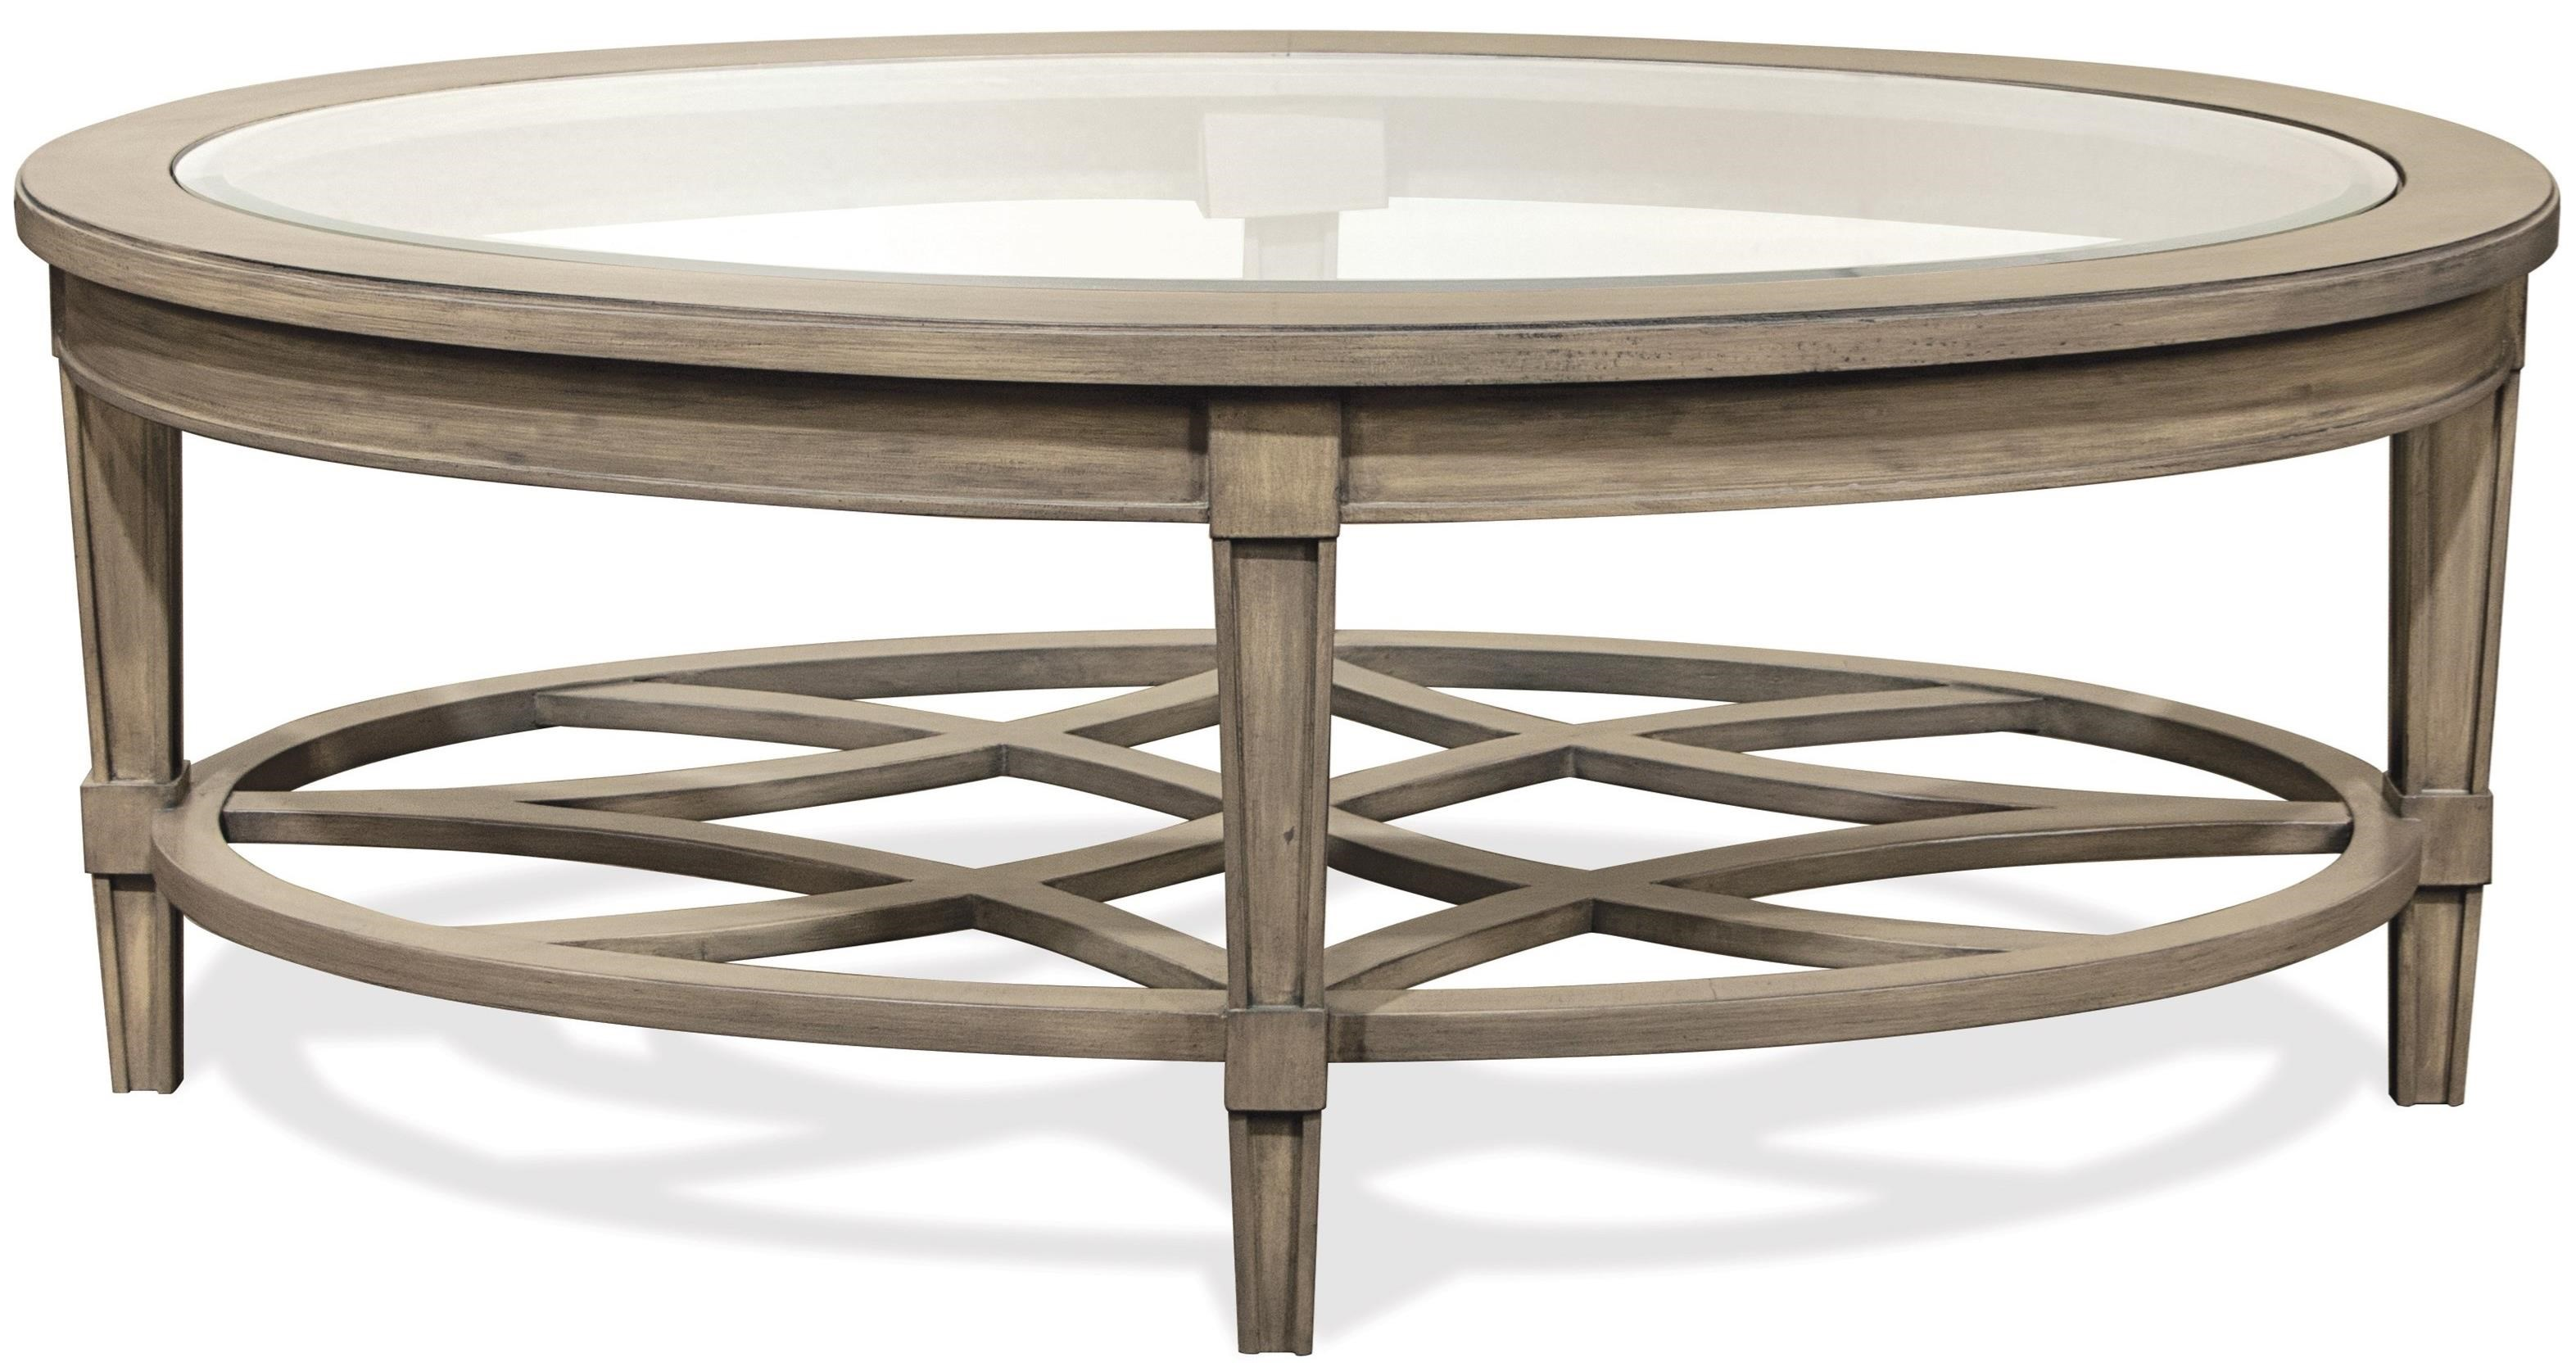 Oval Cocktail Table with Decorative Open Slat Bottom Shelf by